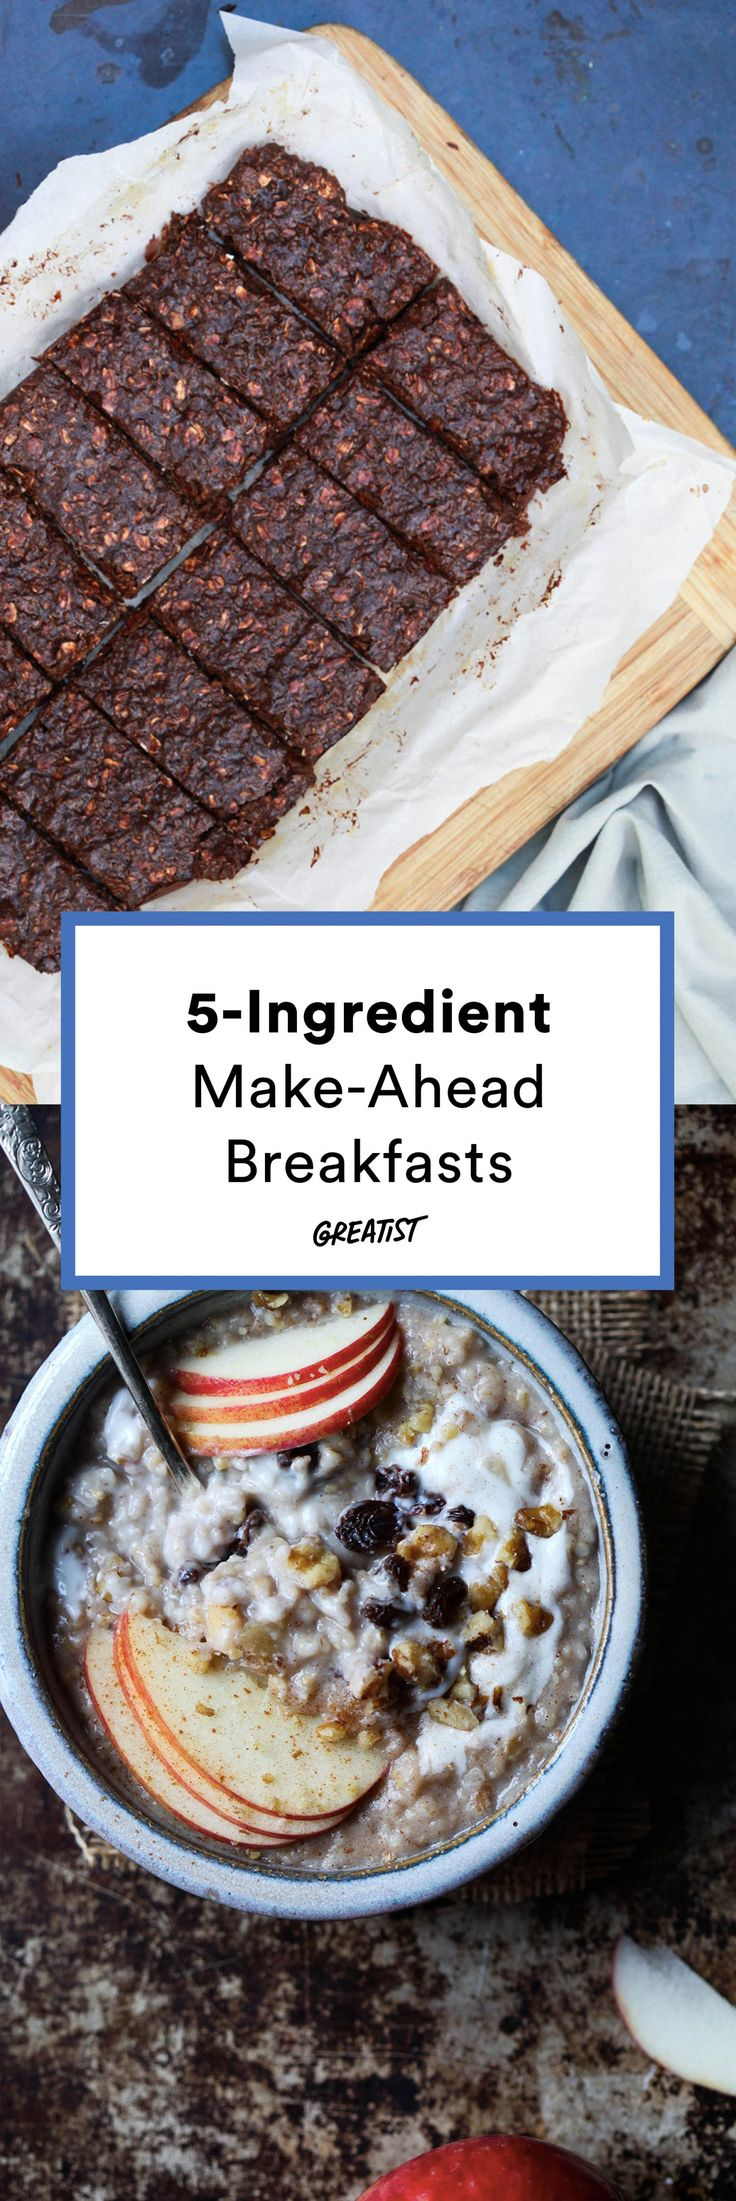 Rise and shine, it's already-made-breakfast time.  #greatist https://greatist.com/eat/make-ahead-breakfasts-with-5-ingredients